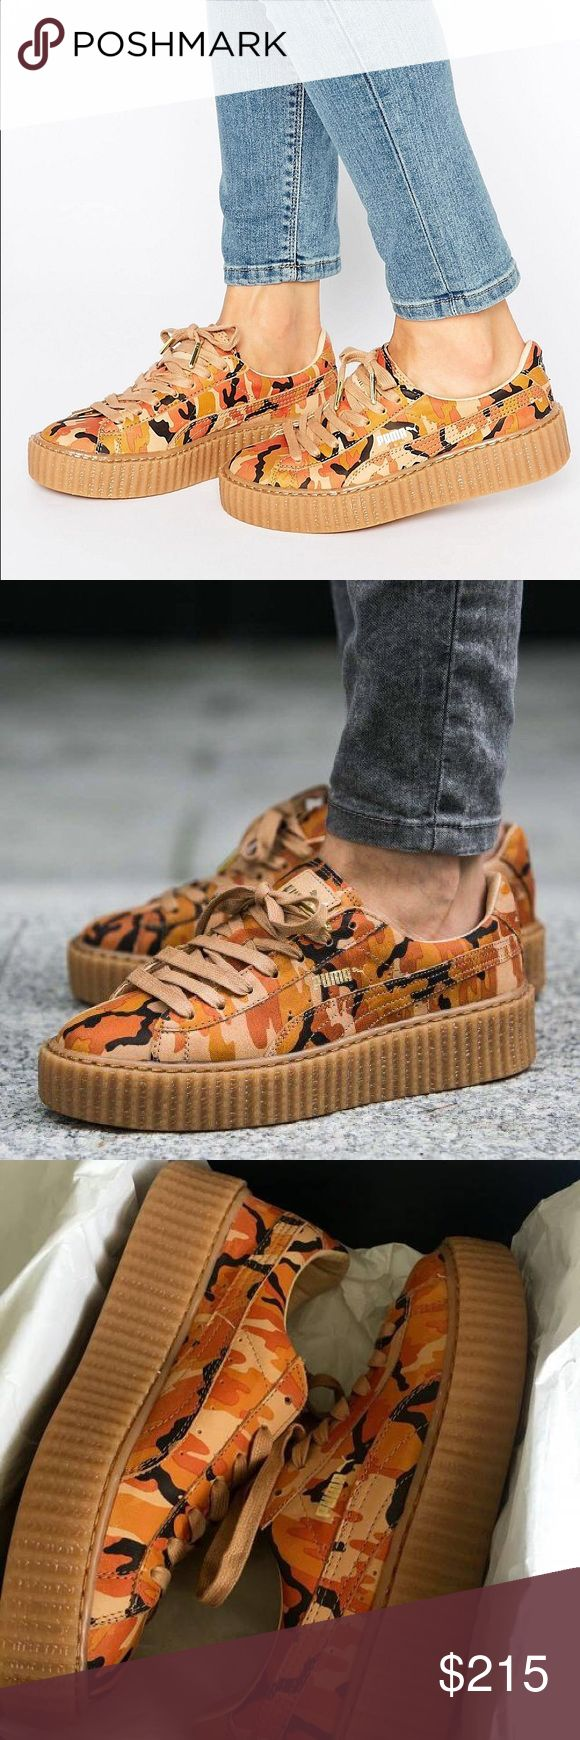 New puma Rihanna Fenty Creepers orange Camo New in box. 100% authentic! Women's size 8.5. Lower on Merc. Feel free to make me an offer :) Puma Shoes Sneakers